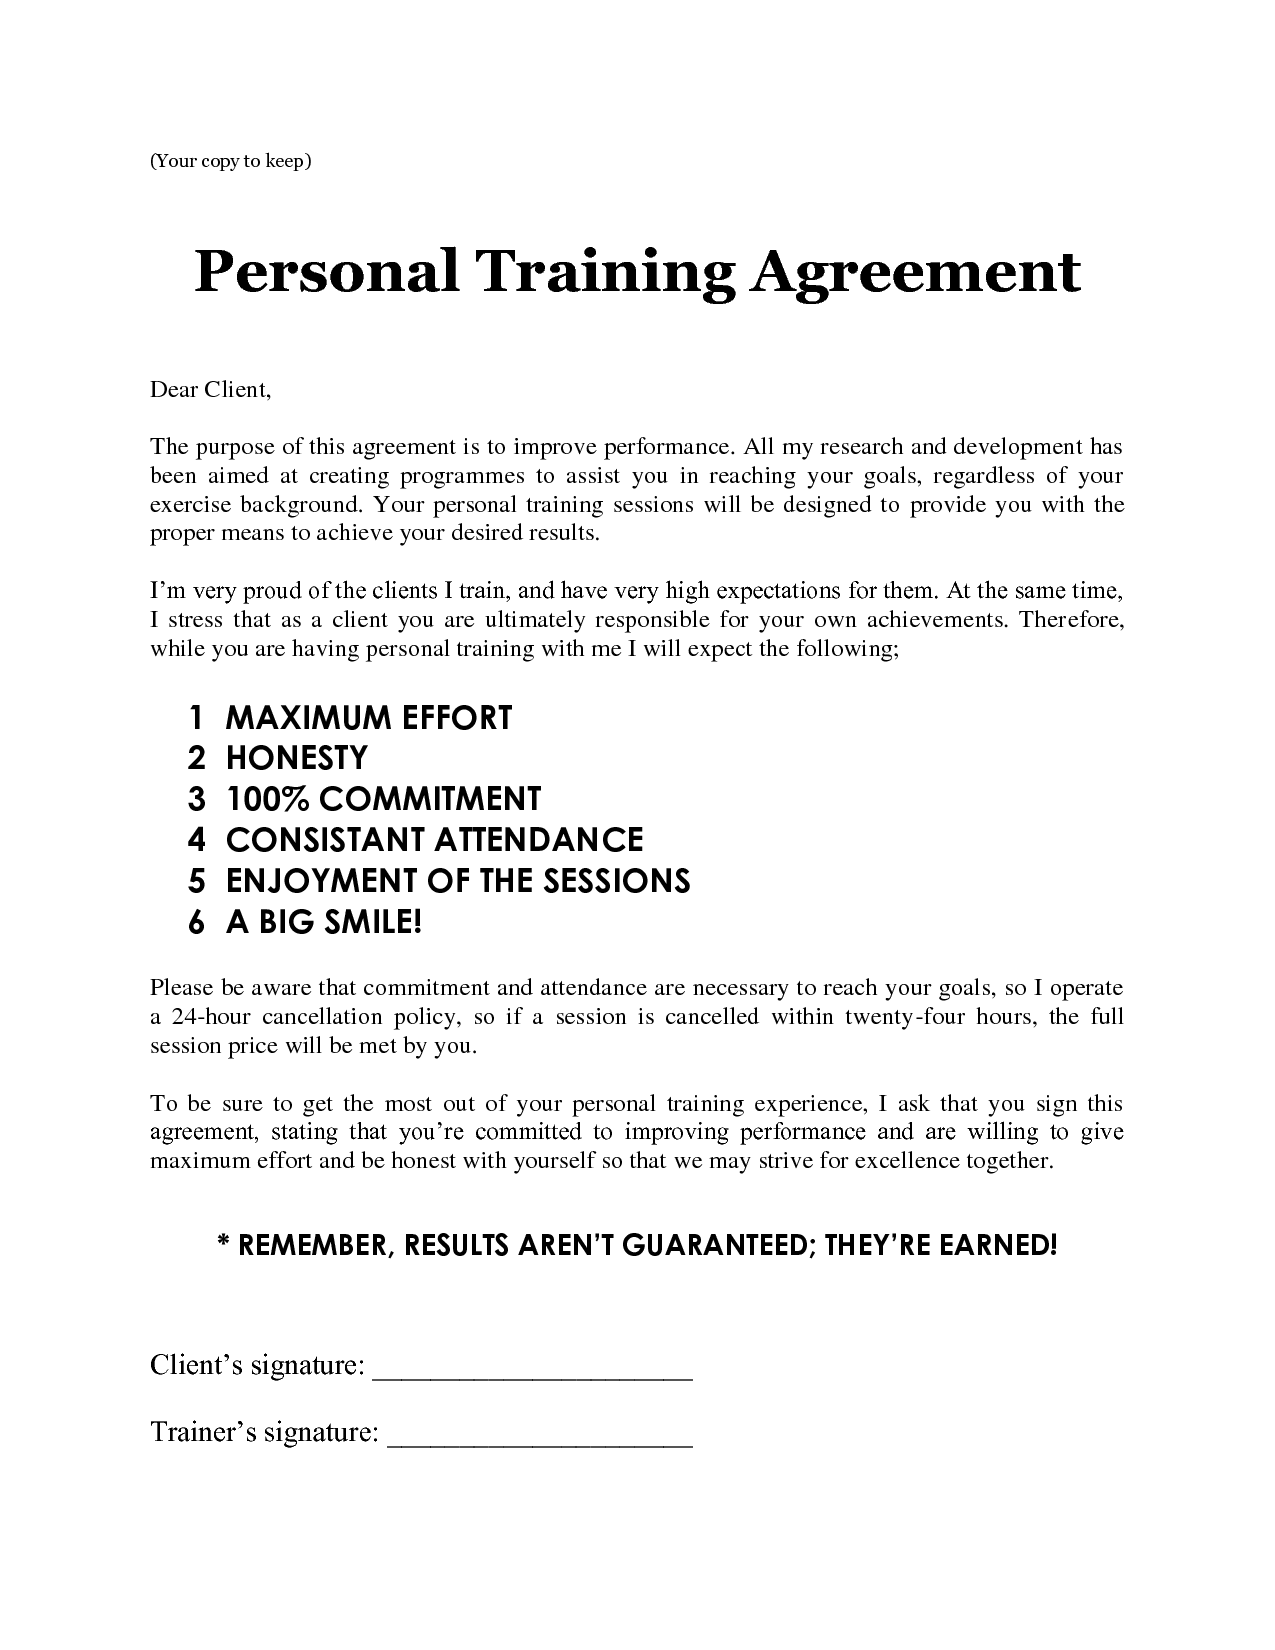 Personal training sheets personal training agreement fitness personal training sheets personal training agreement thecheapjerseys Gallery